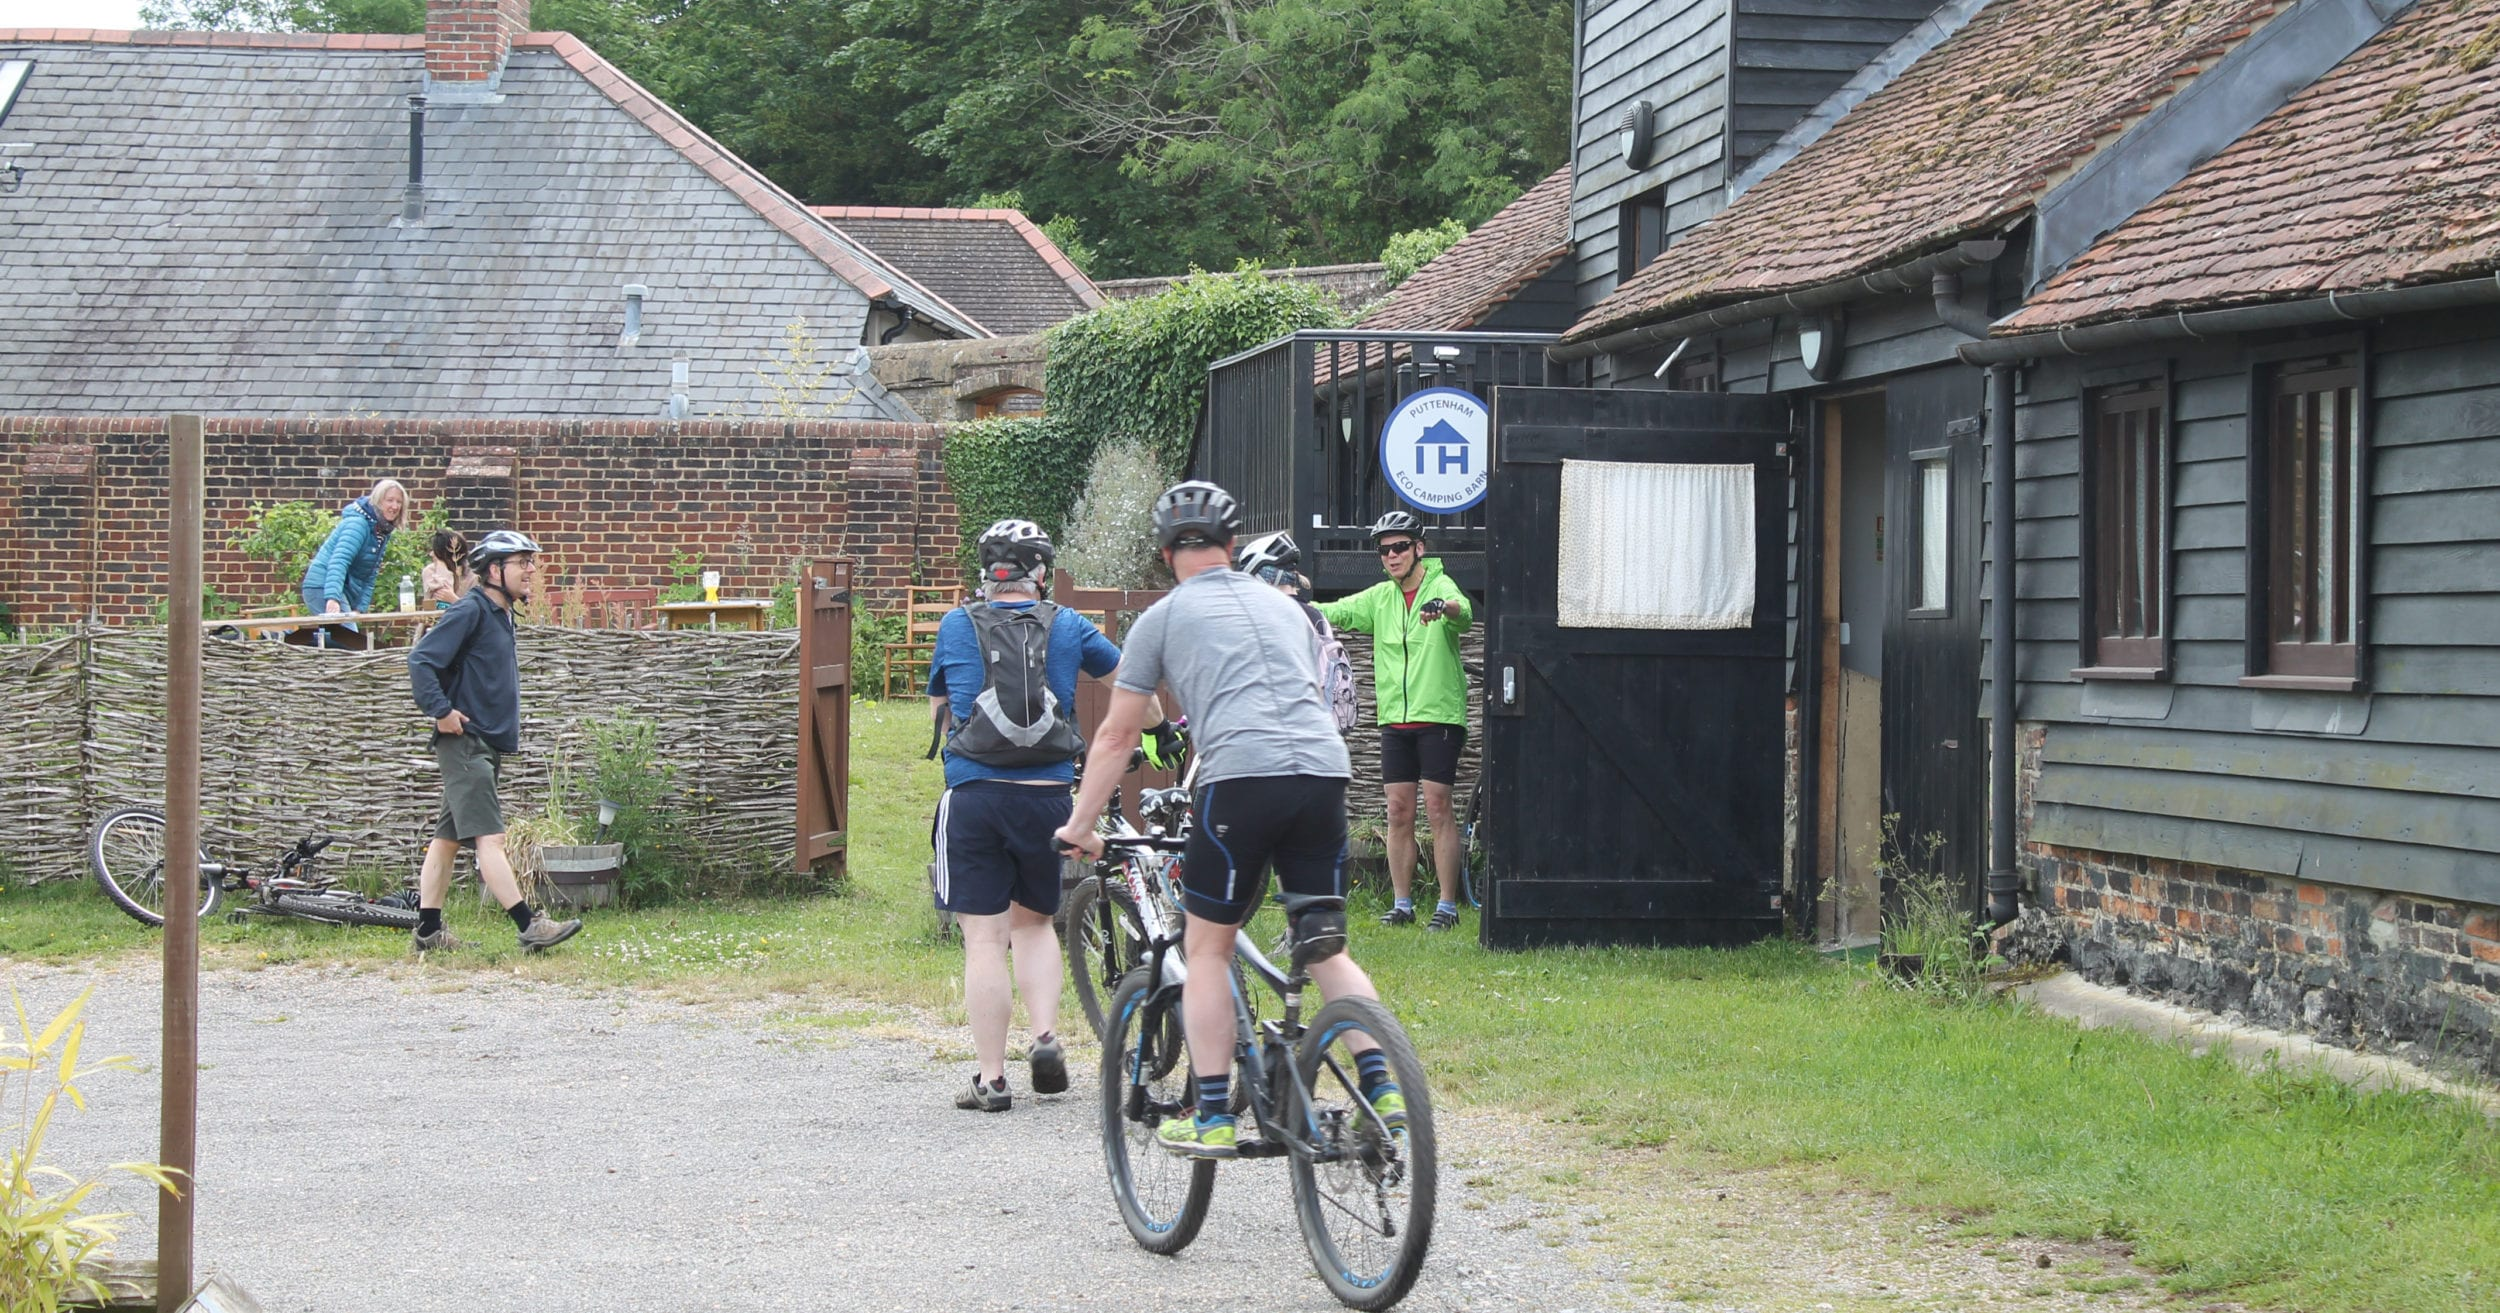 Arriving by bike to qualify for the 'Green Discount' at Puttenham ECO Camping Barn on the North Downs Way